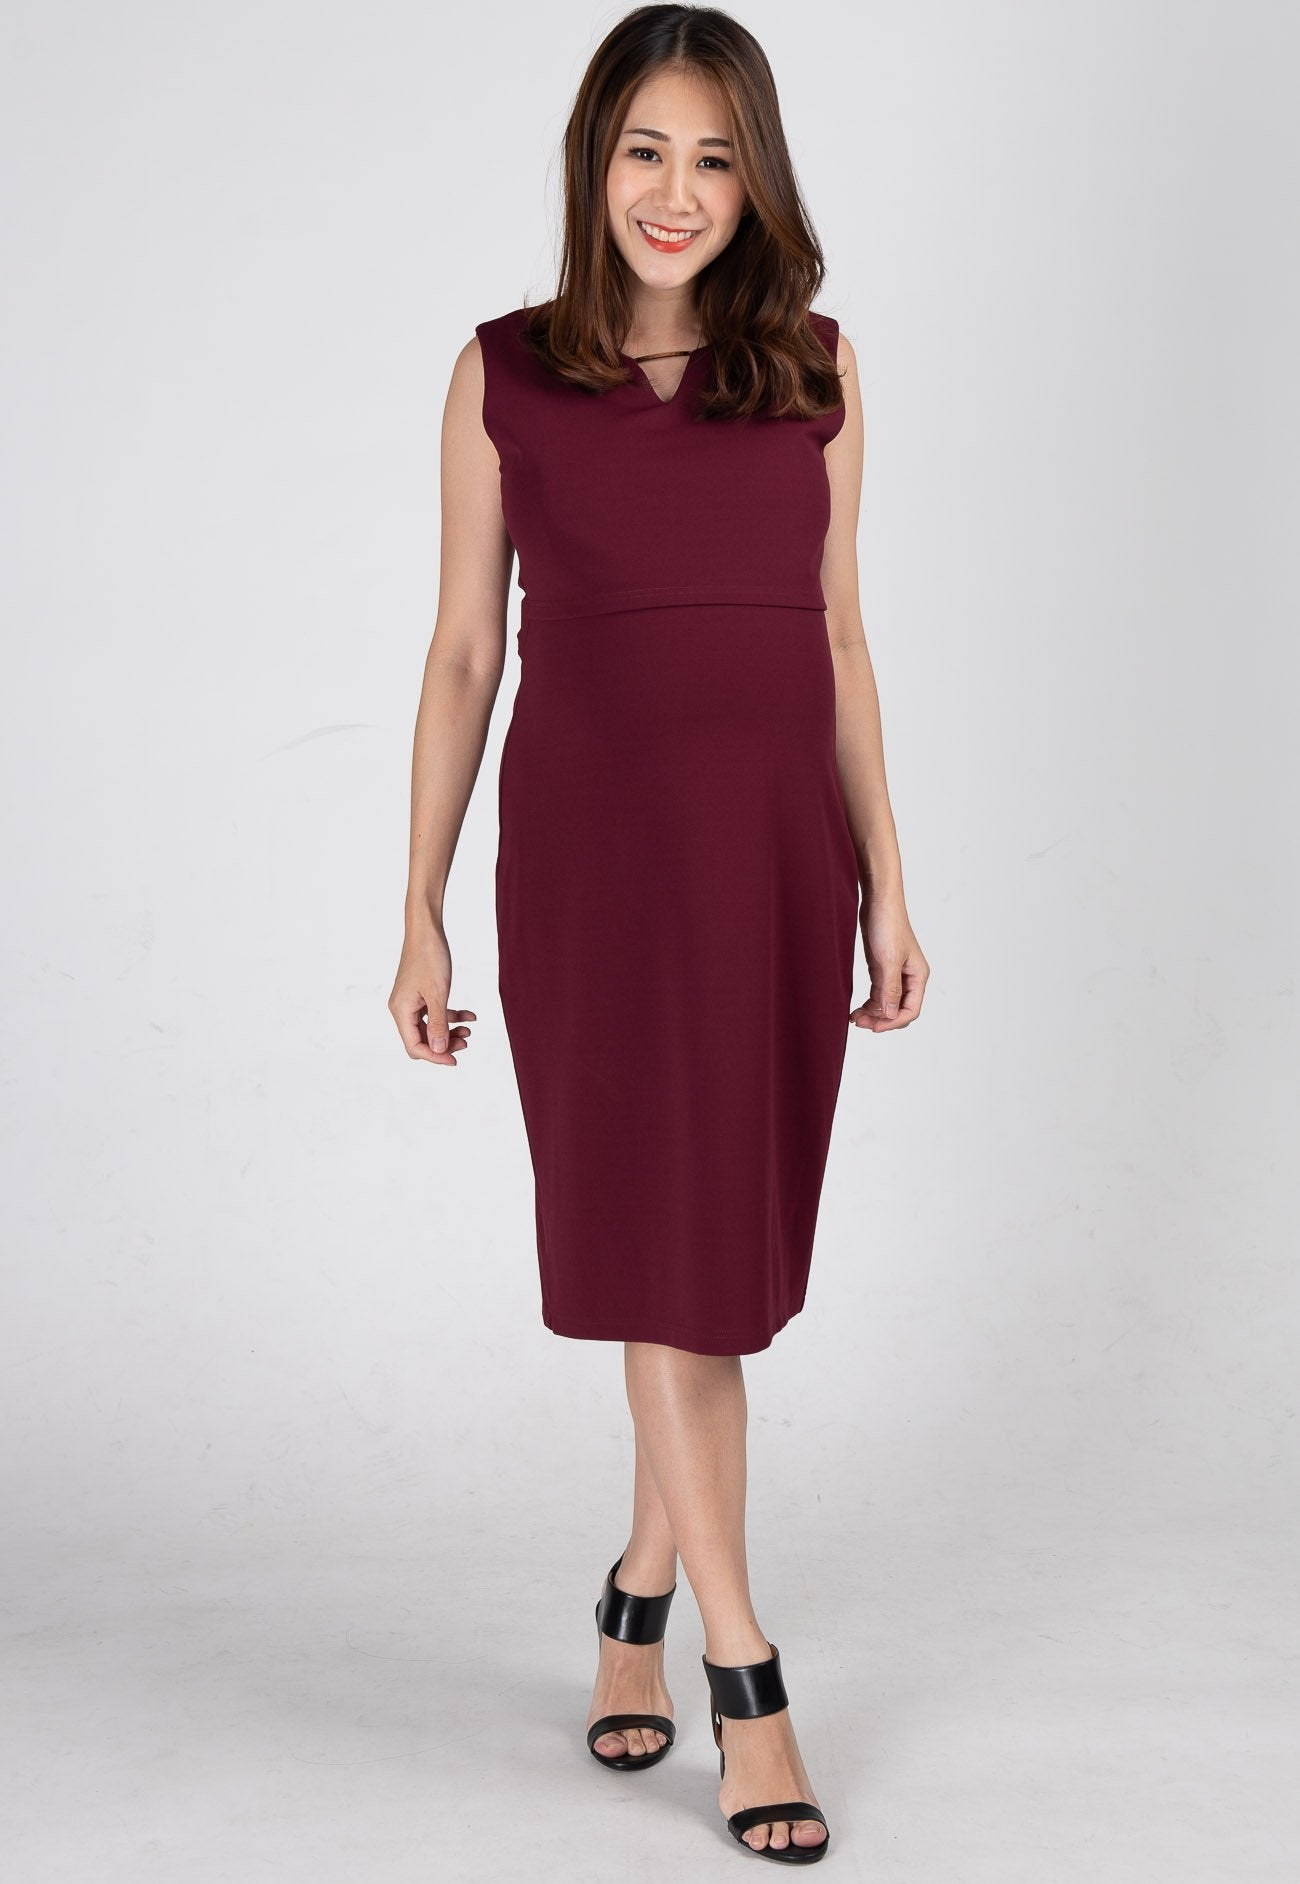 Mothercot Evelin Bodycon Nursing Dress in Red  by JumpEatCry - Maternity and nursing wear